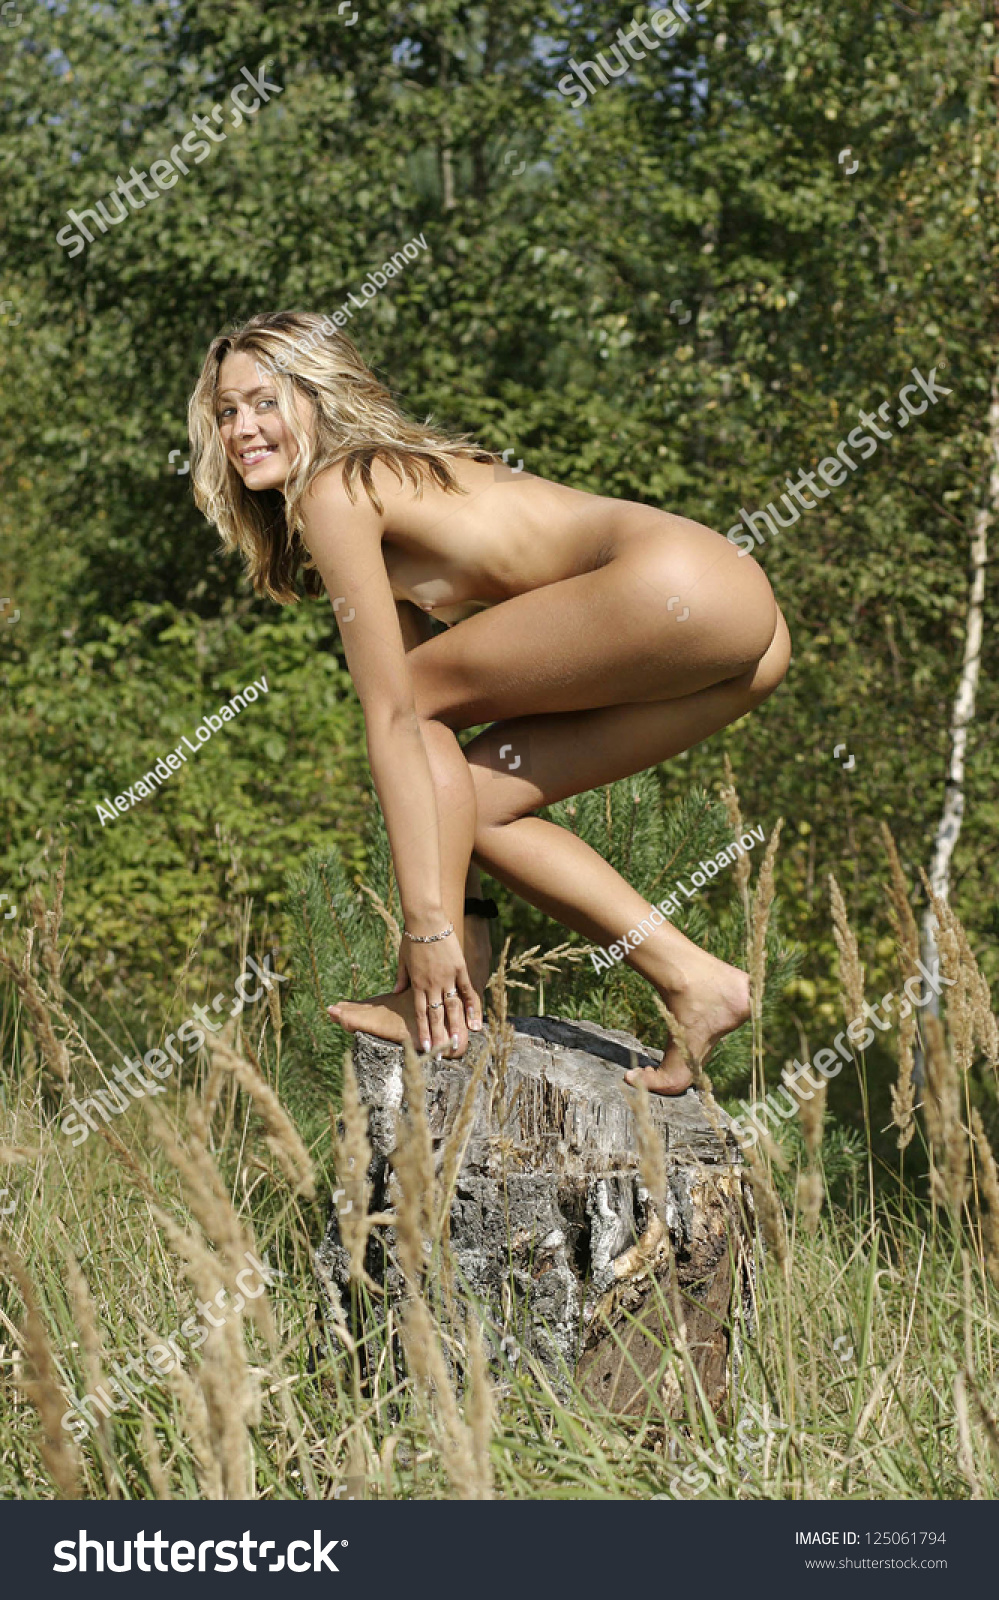 in Naked park girl